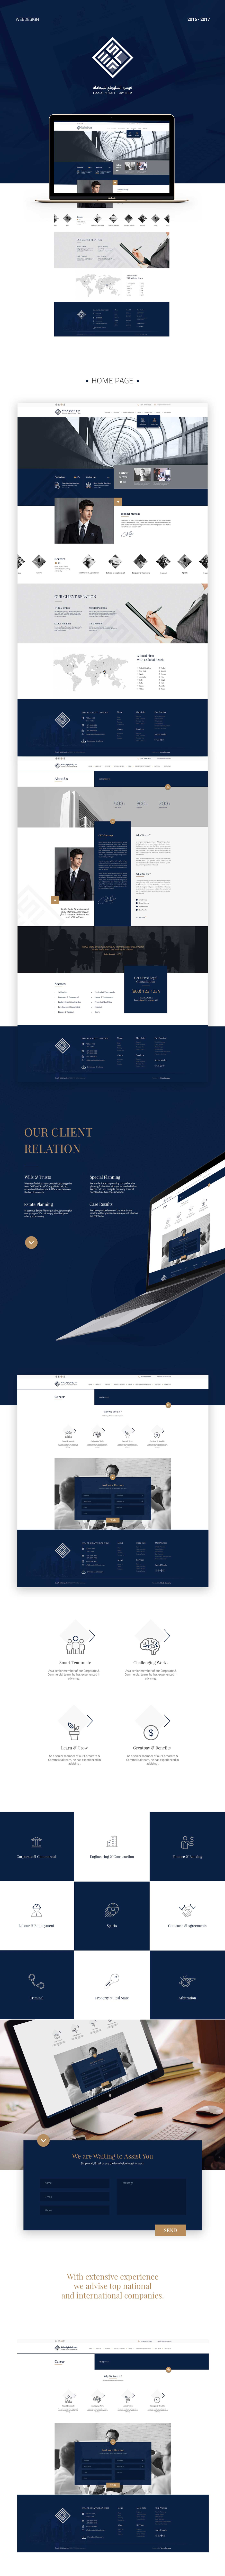 Essa Al Sulaiti Law Firm's website design and development by Whyte Company